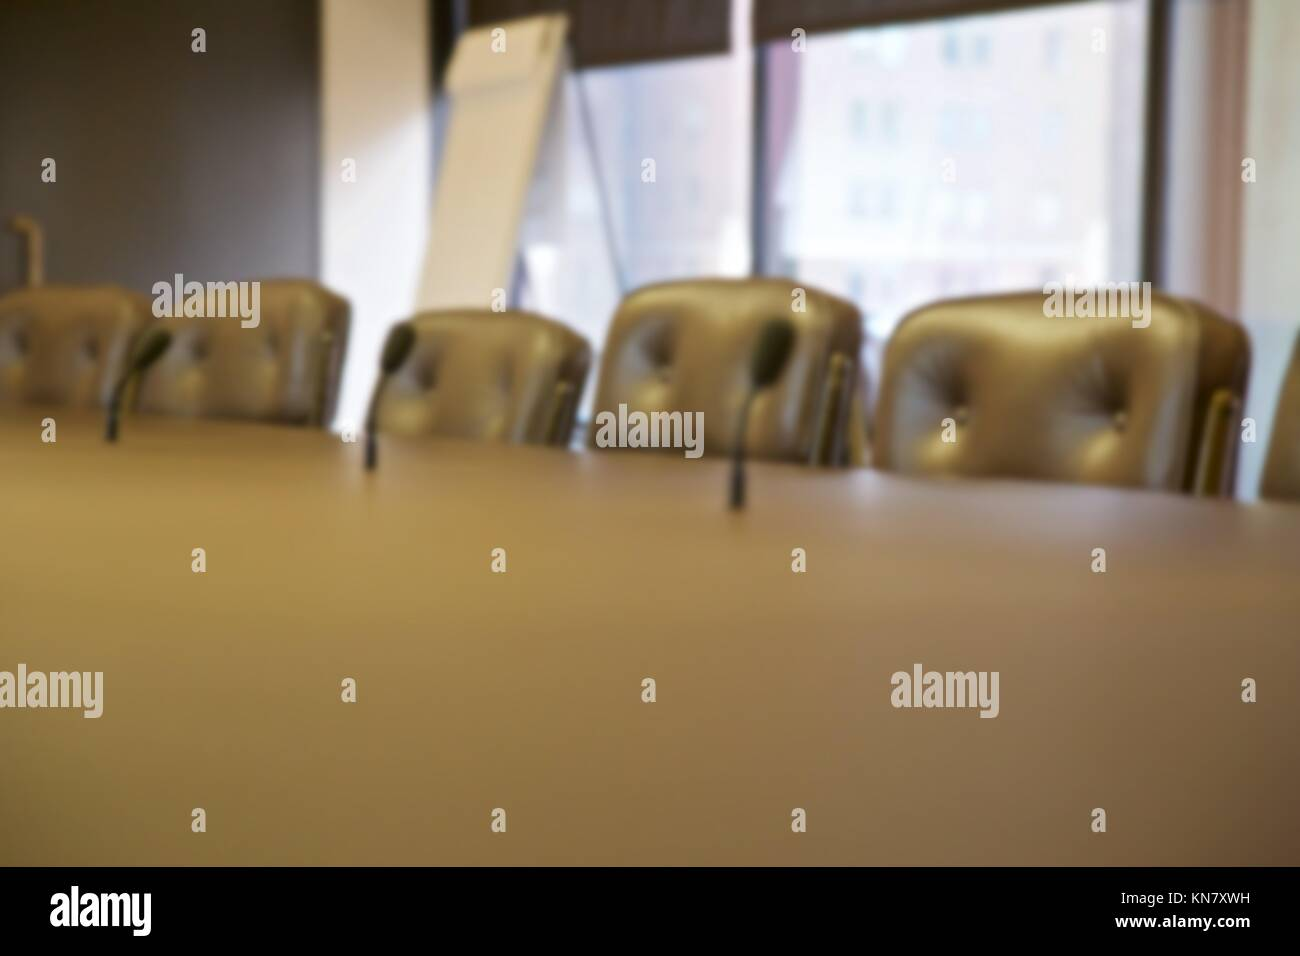 Background blur of empty seats at a board room table. - Stock Image